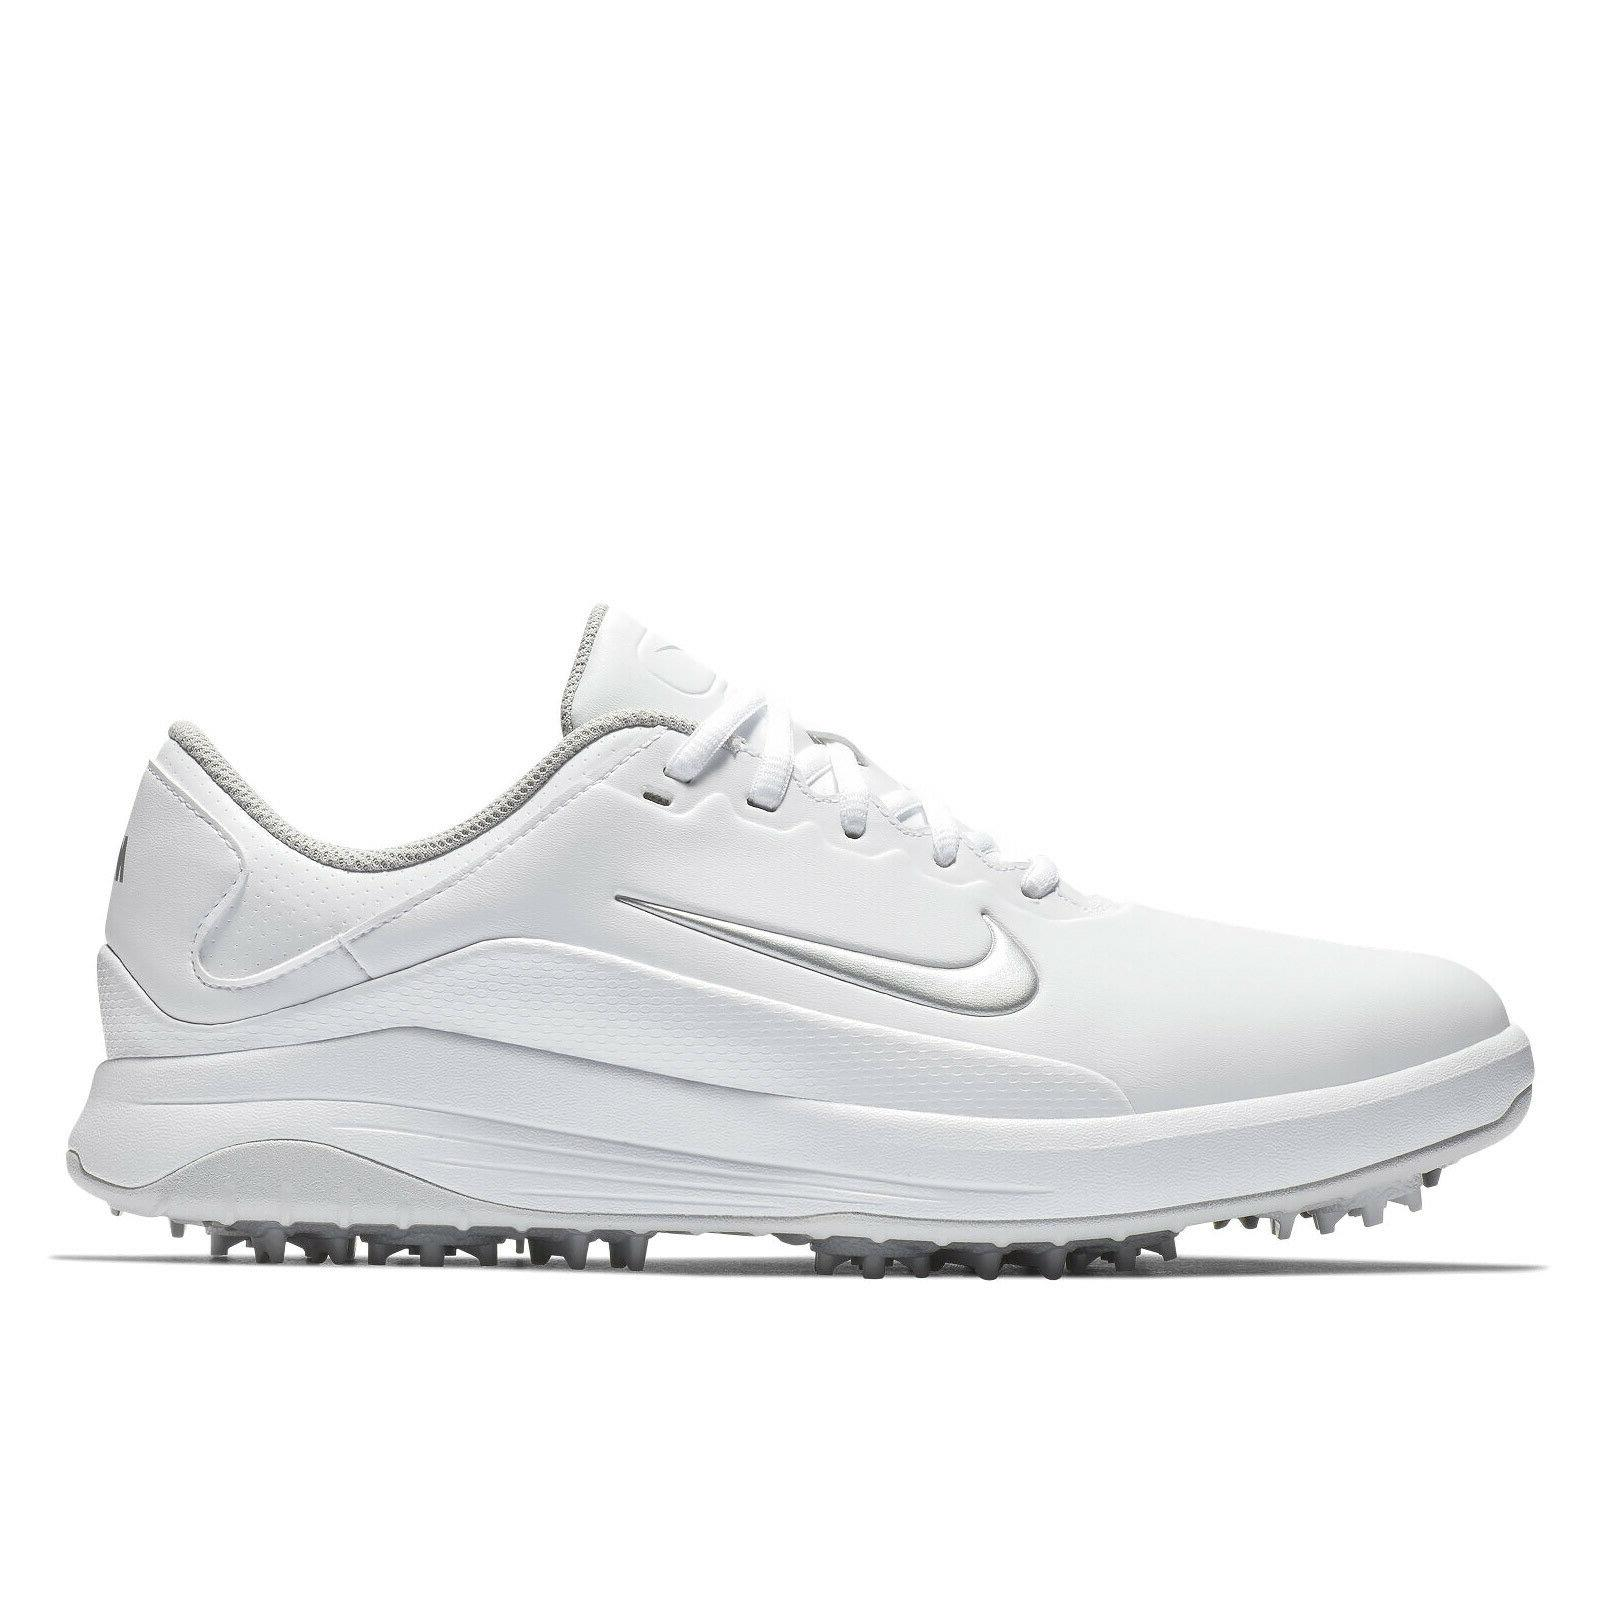 mens vapor golf shoes cleats spikes wide